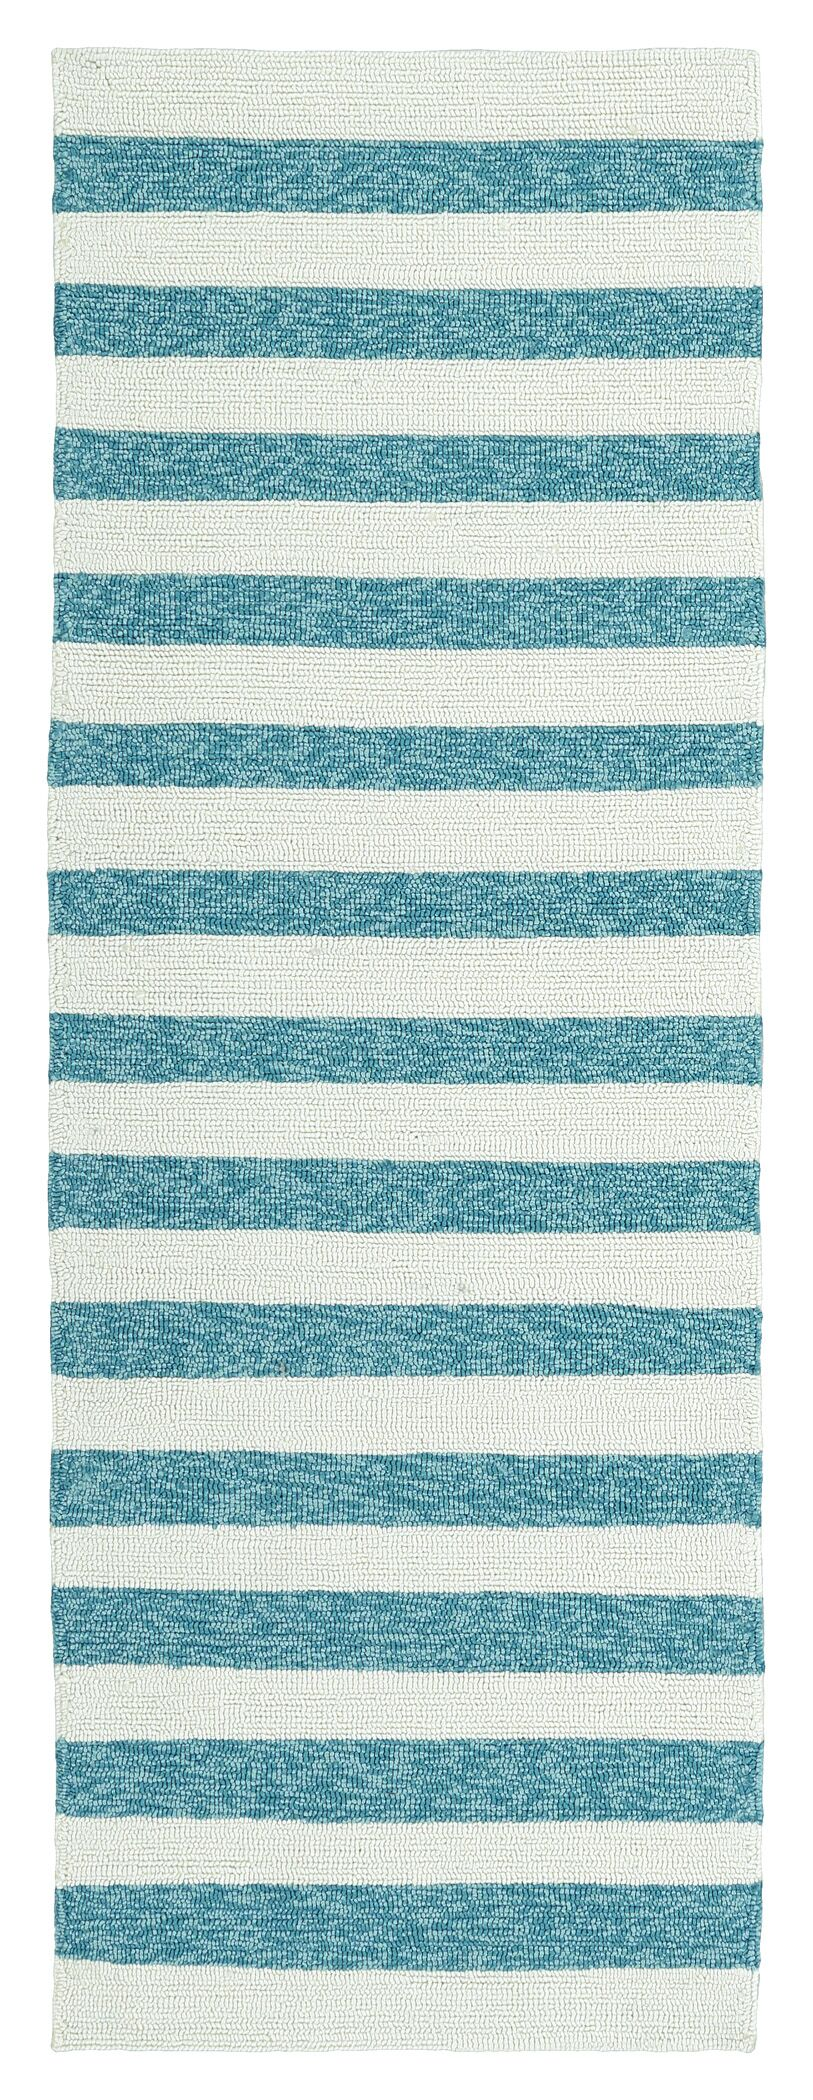 Suffield Hand-Tufted Blue Indoor/Outdoor Area Rug Rug Size: Rectangle 8' x 10'